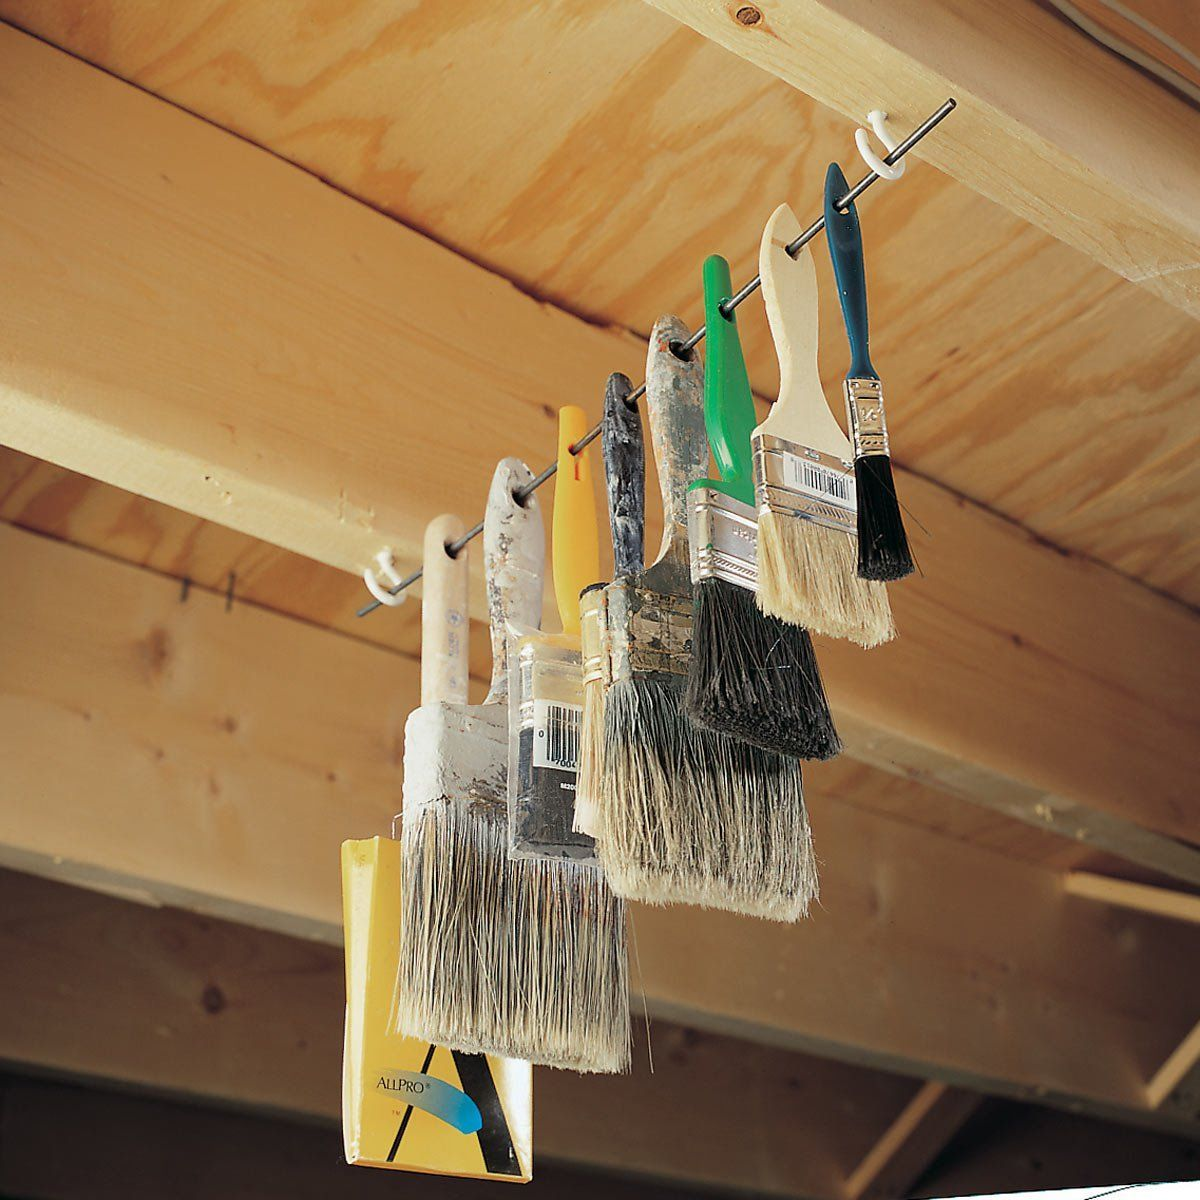 Out-Of-The-Way Paint Brush Storage